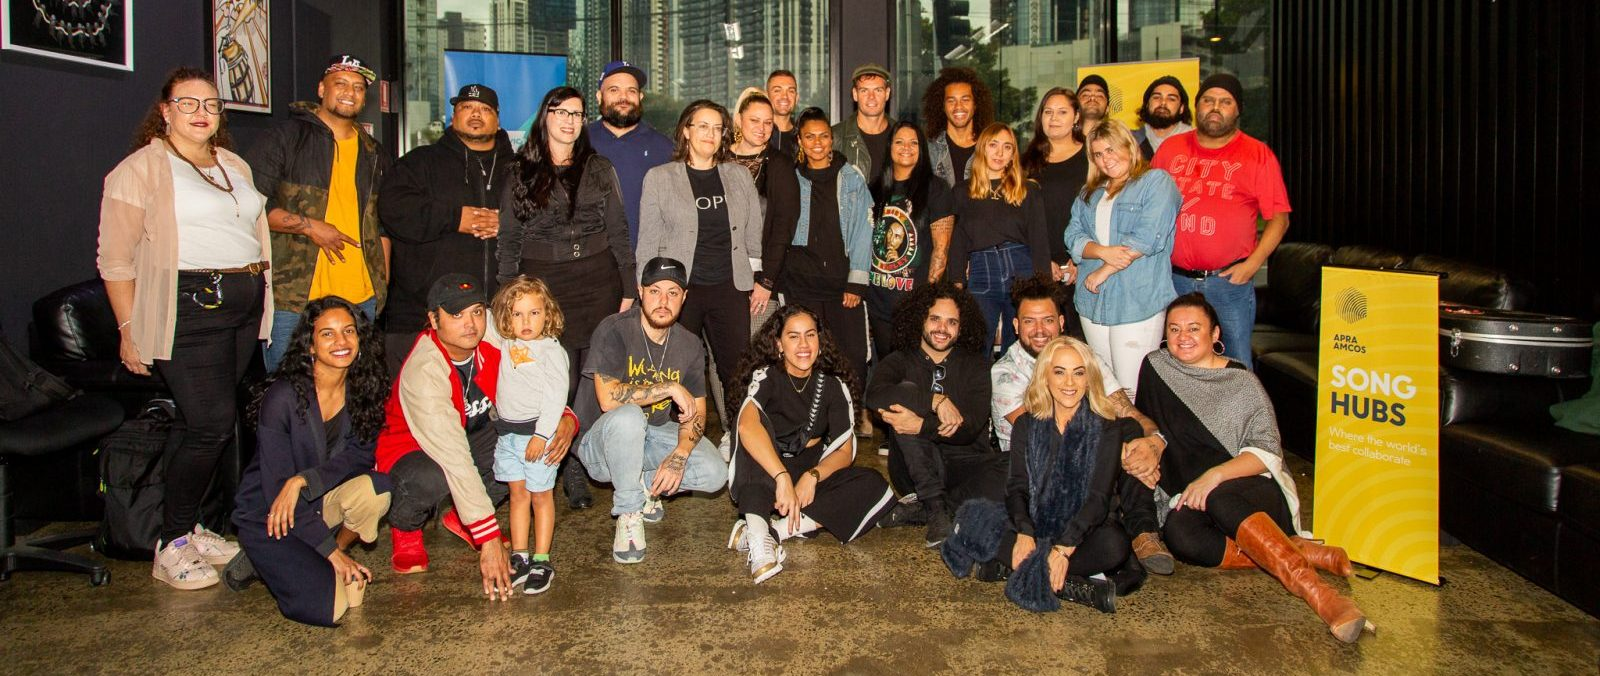 BRIGGS CURATES INAUGURAL FIRST NATIONS SONG HUBS